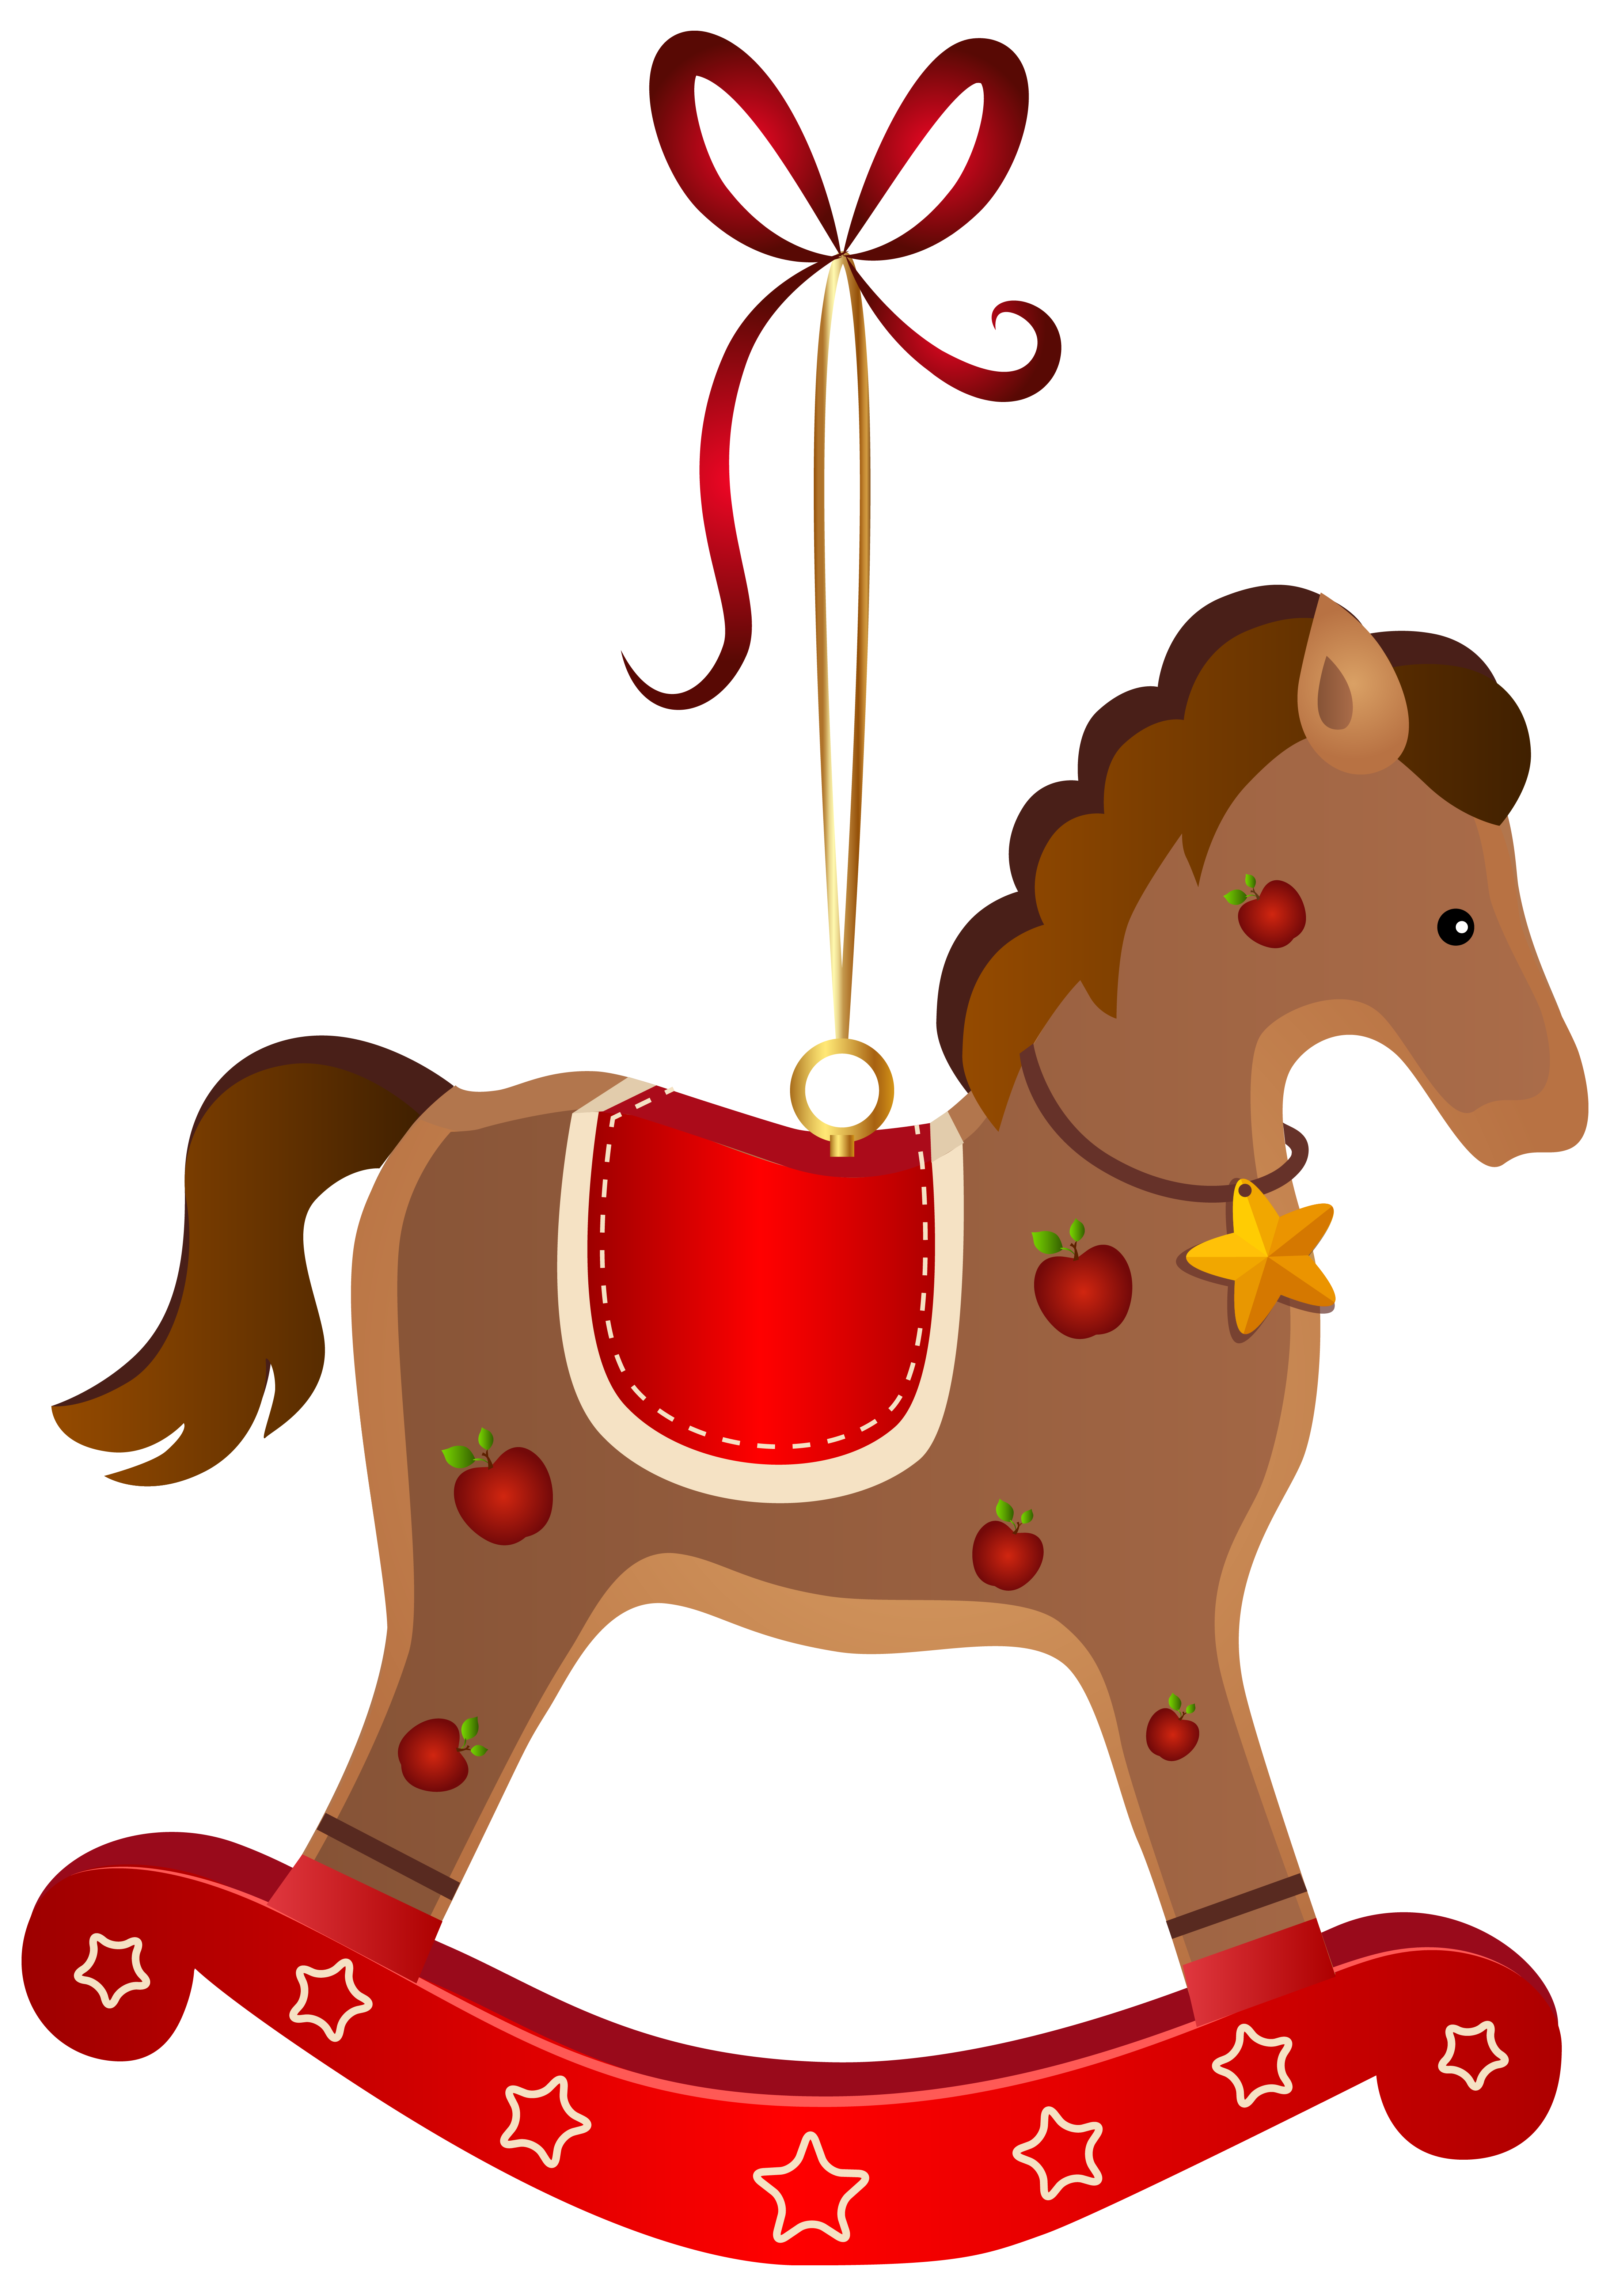 Rocking Horse Christmas Ornament Transparent PNG Clip Art Image.